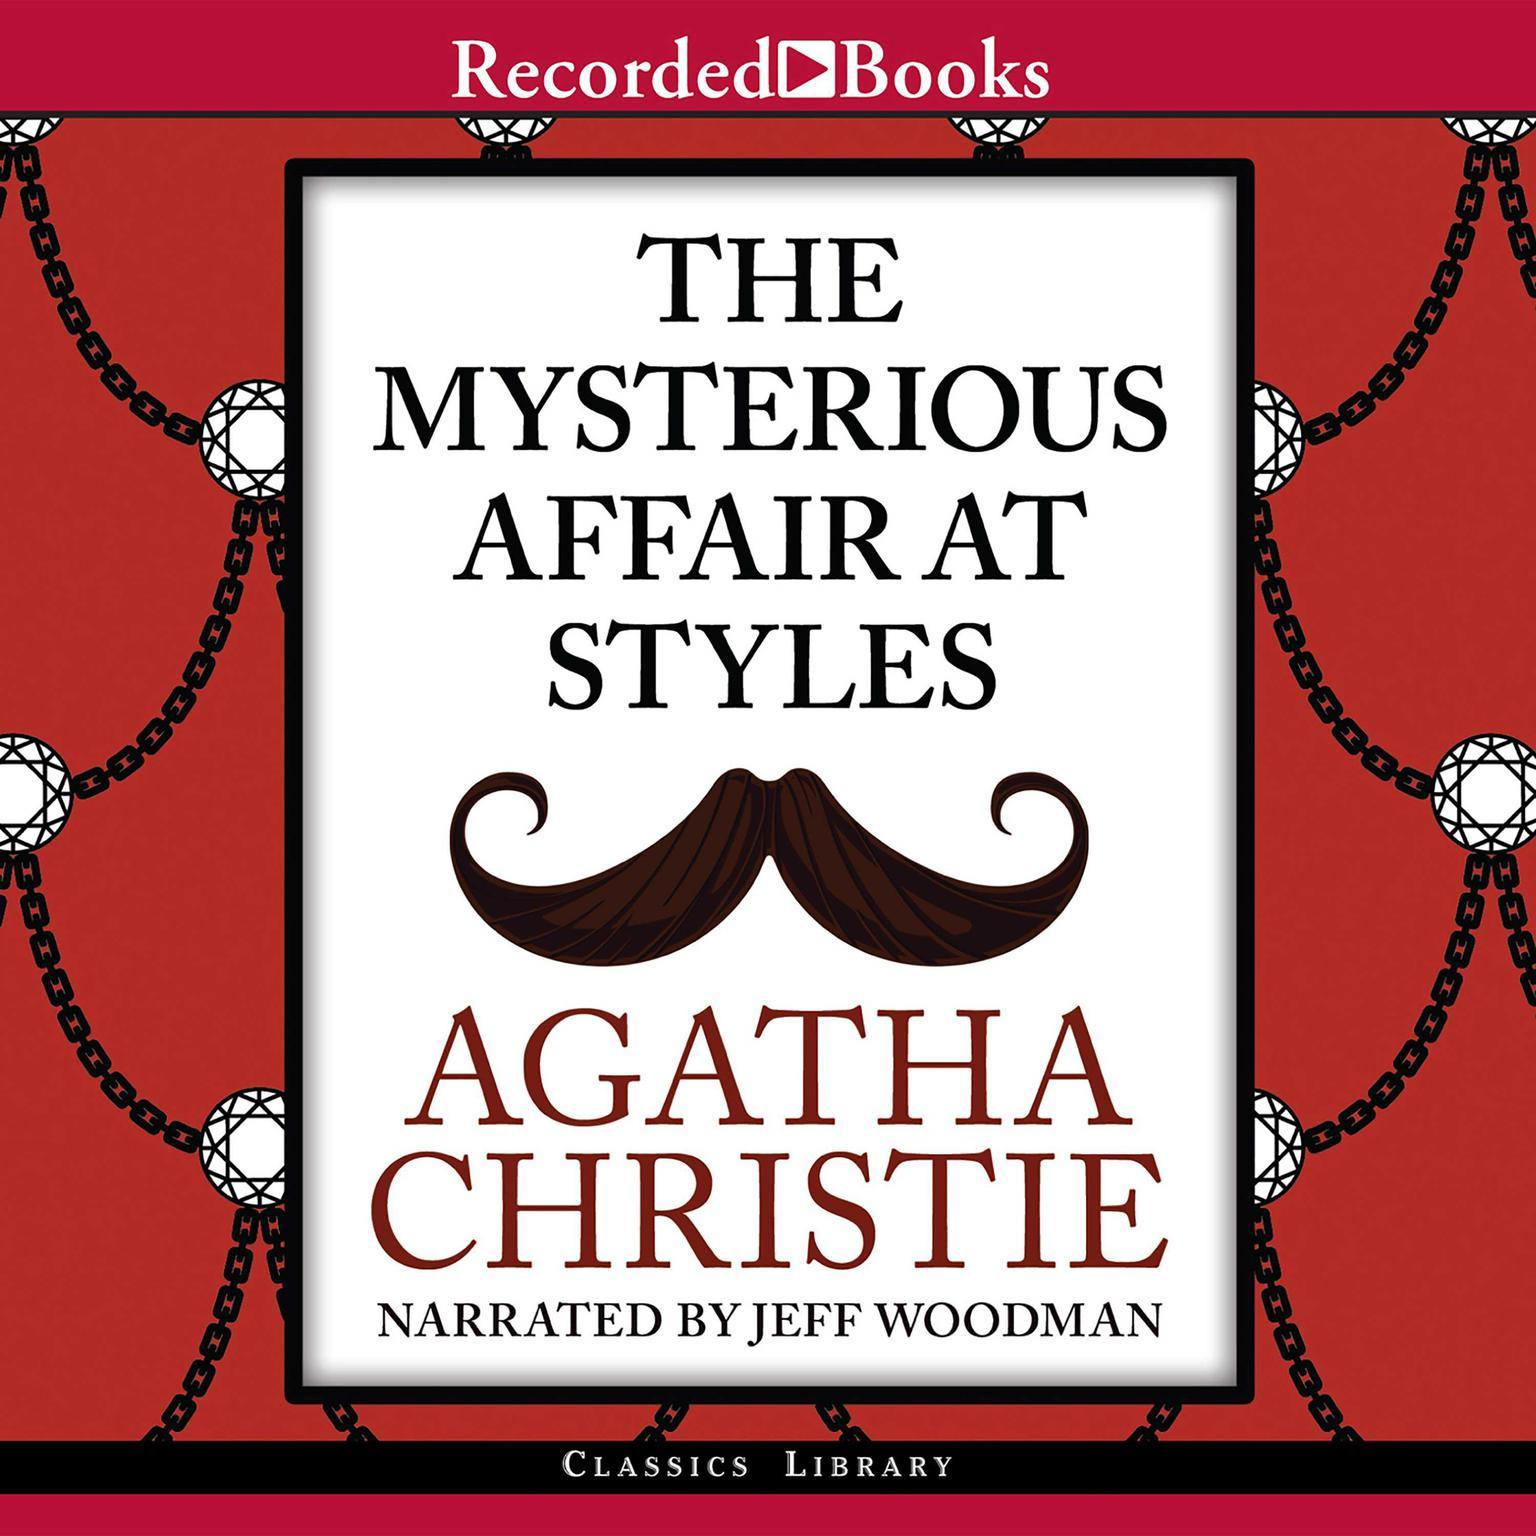 mysterious affair at styles 1 the mysterious affair at styles agatha christie contents i i go to styles ii the 16th and 17th of july iii the night of the tragedy.